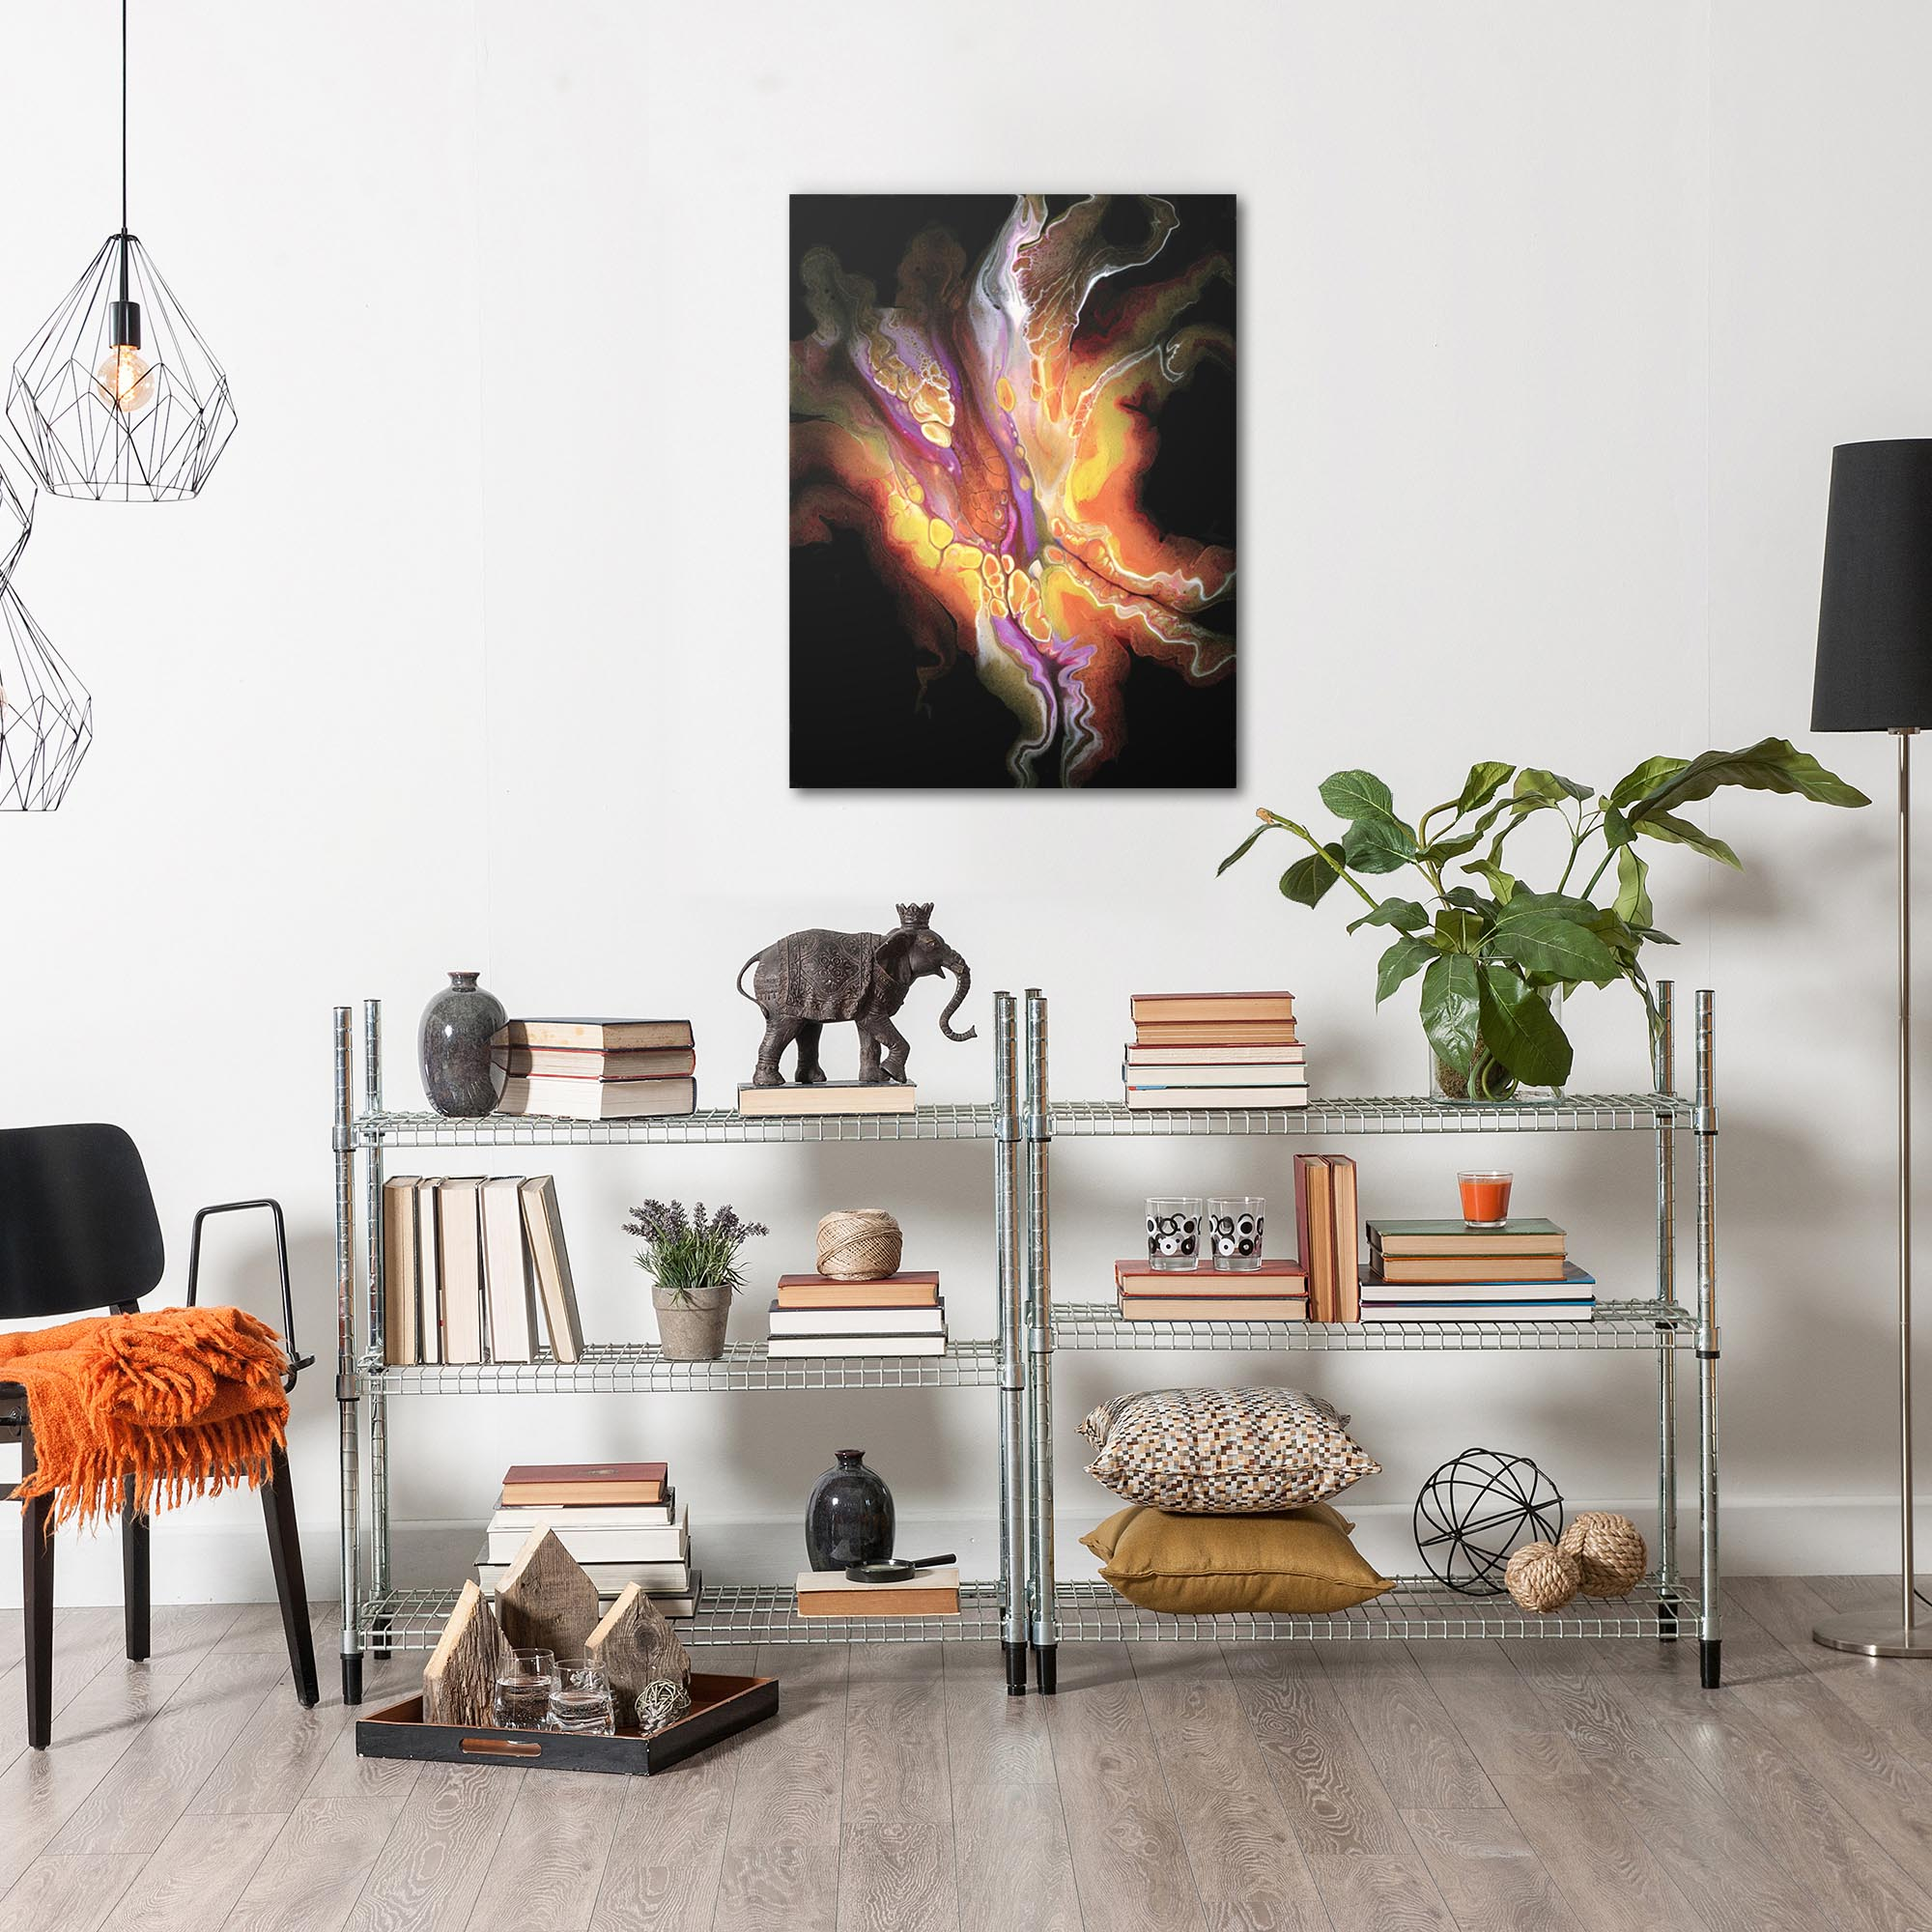 Creation by Elana Reiter - Abstract Wall Art, Modern Home Decor (24in x 32in) - Image 3